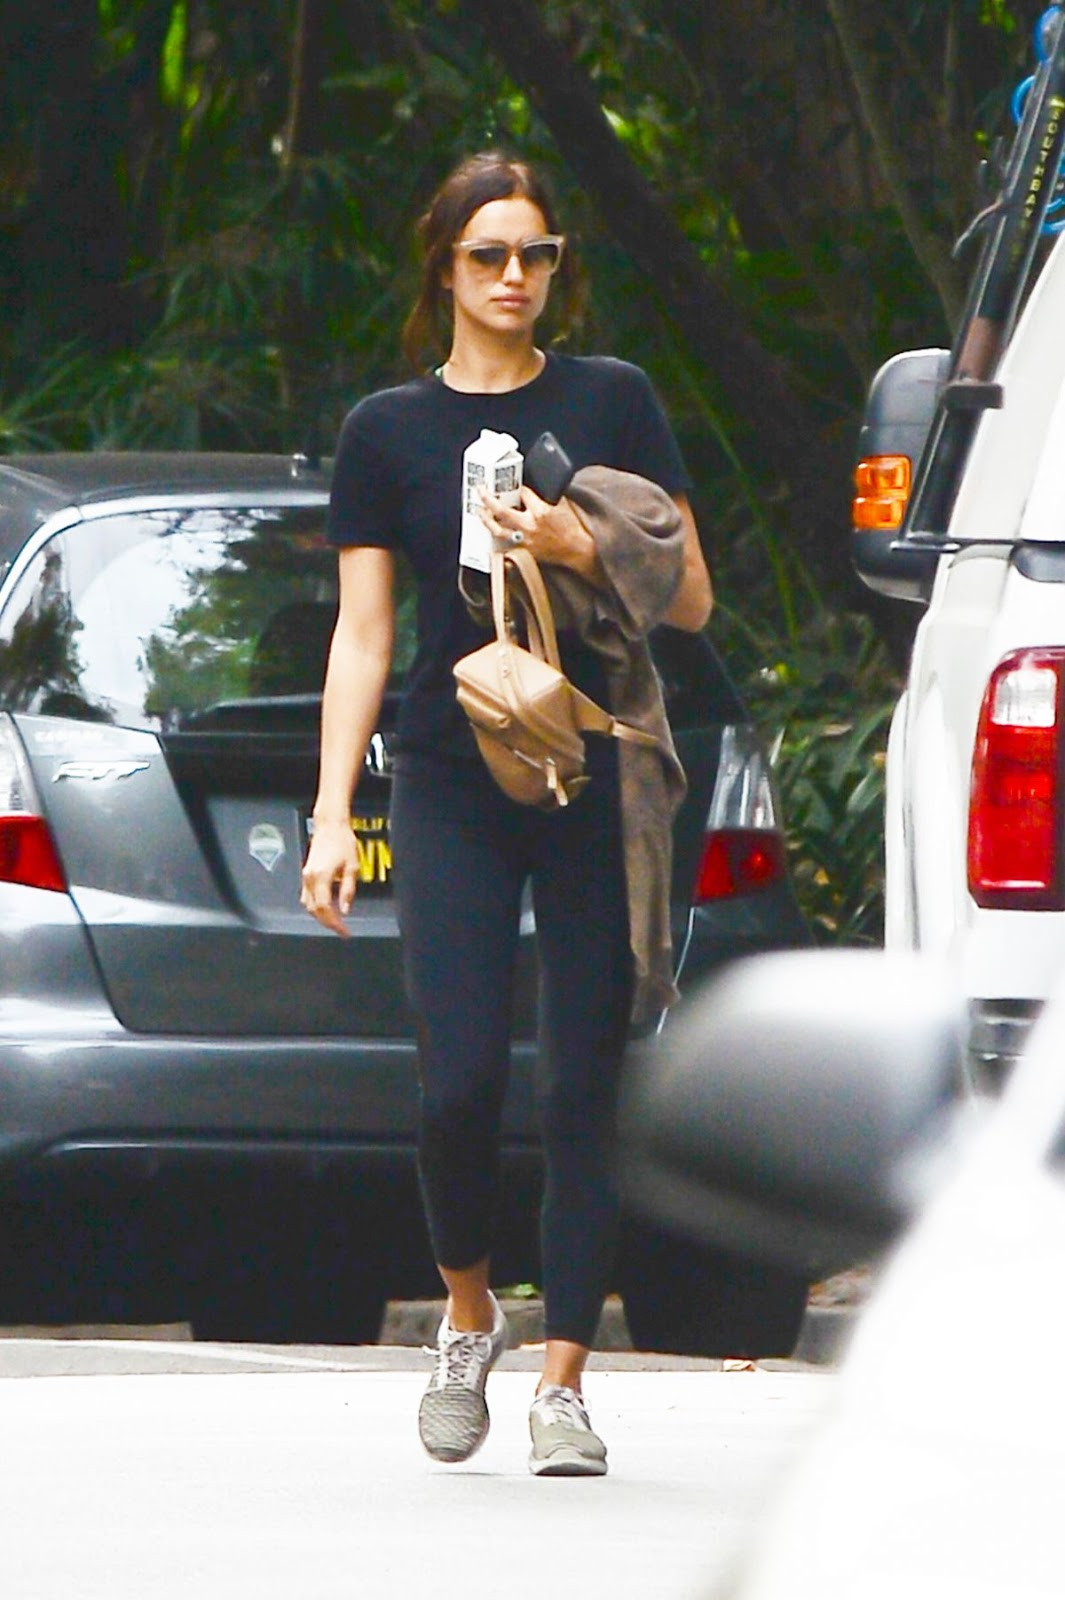 Photos of Irina Shayk without makeup Heading to a Gym in Los Angeles